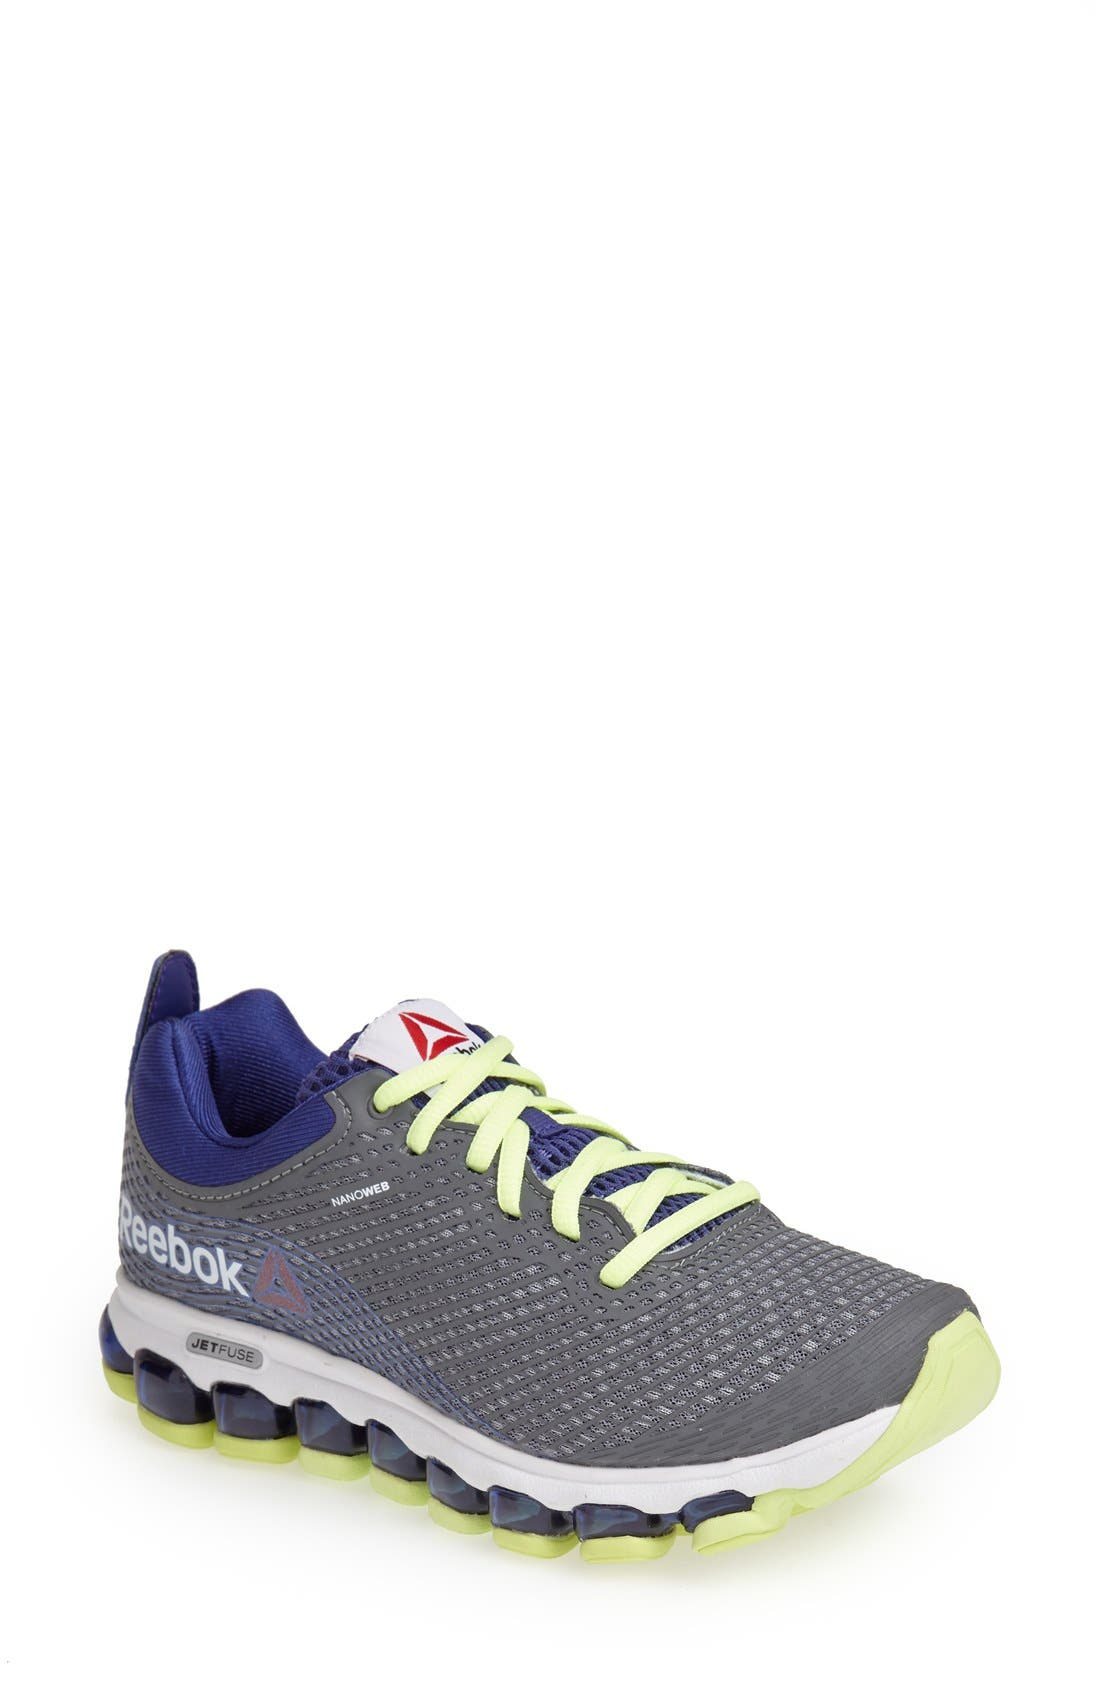 Main Image - Reebok 'Z-Jet - CrossFit' Running Shoe (Women)